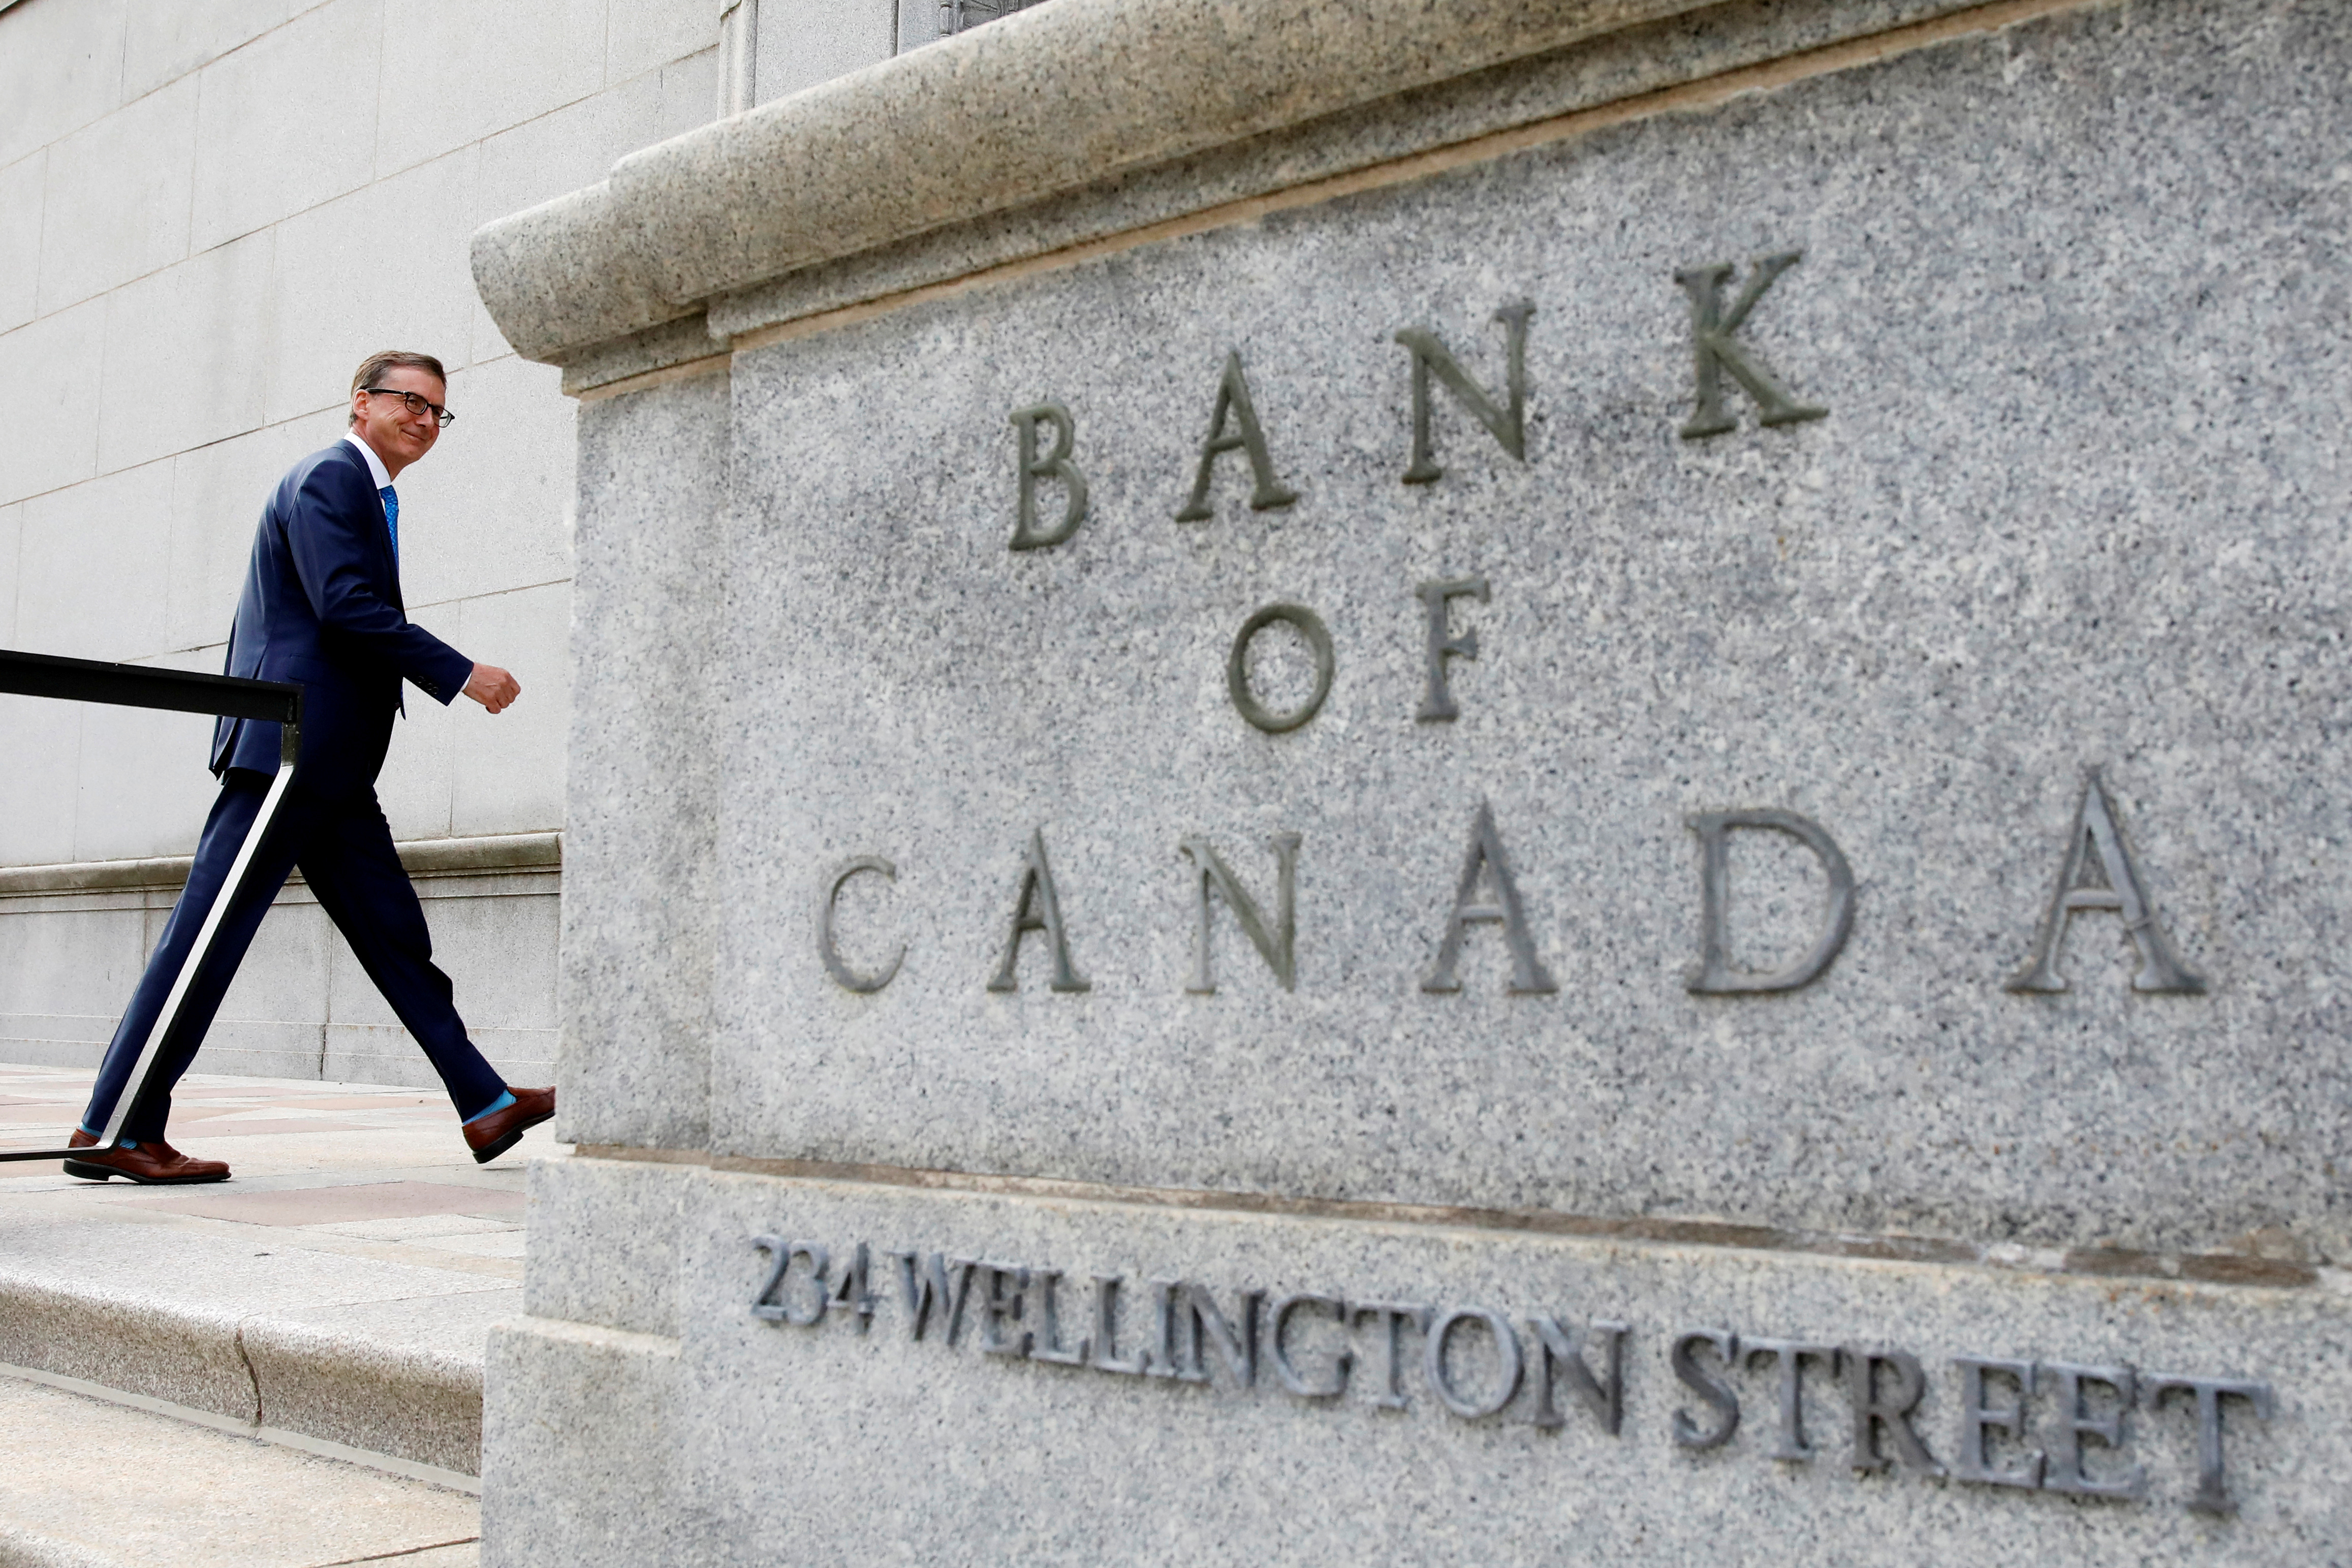 Governor of the Bank of Canada Tiff Macklem walks outside the Bank of Canada building in Ottawa, Ontario, Canada June 22, 2020. REUTERS/Blair Gable/File Photo